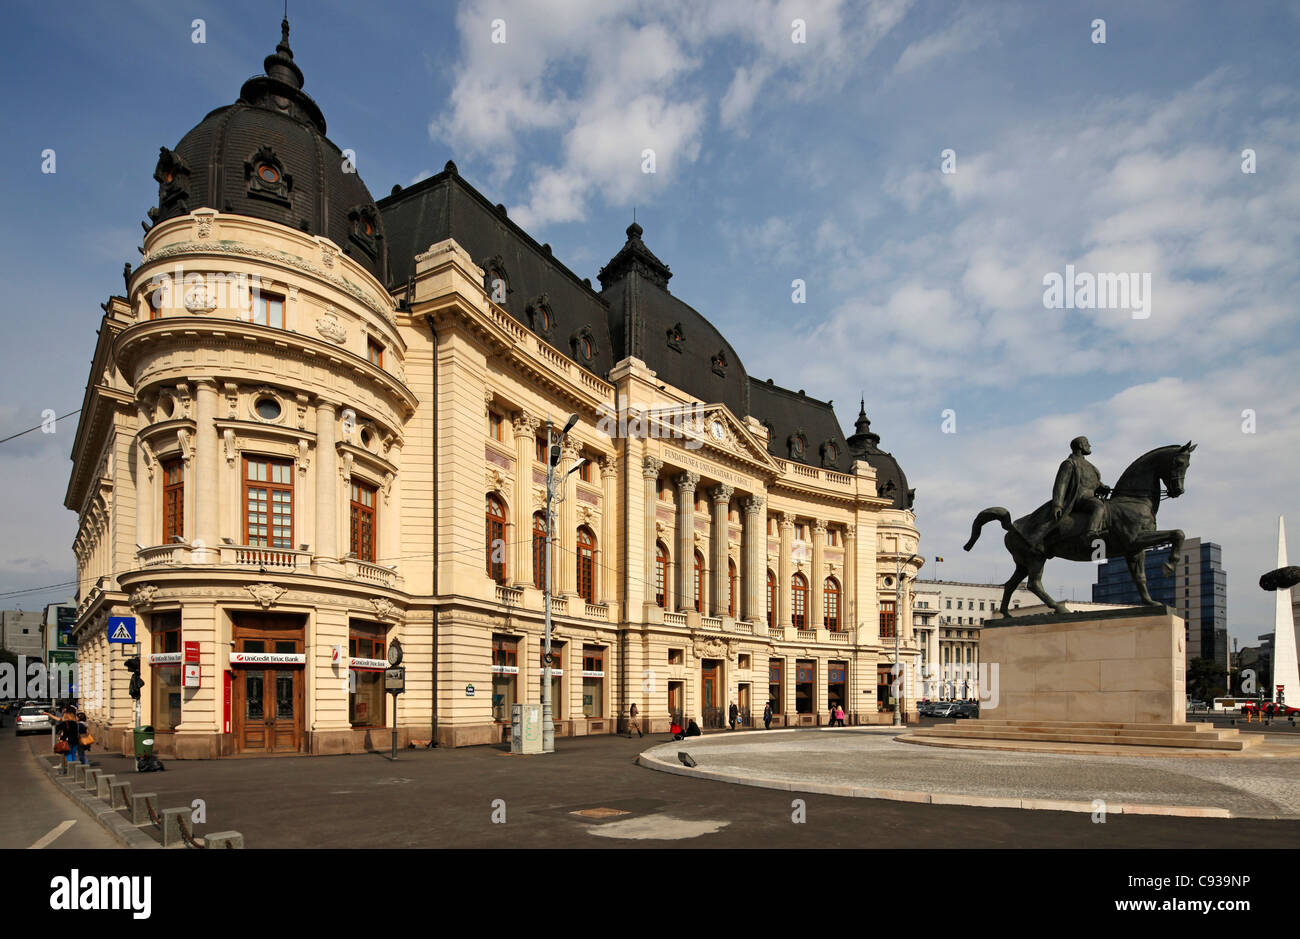 The Central University Library of Bucharest, located across the street from the National Museum of Art of Romania. - Stock Image